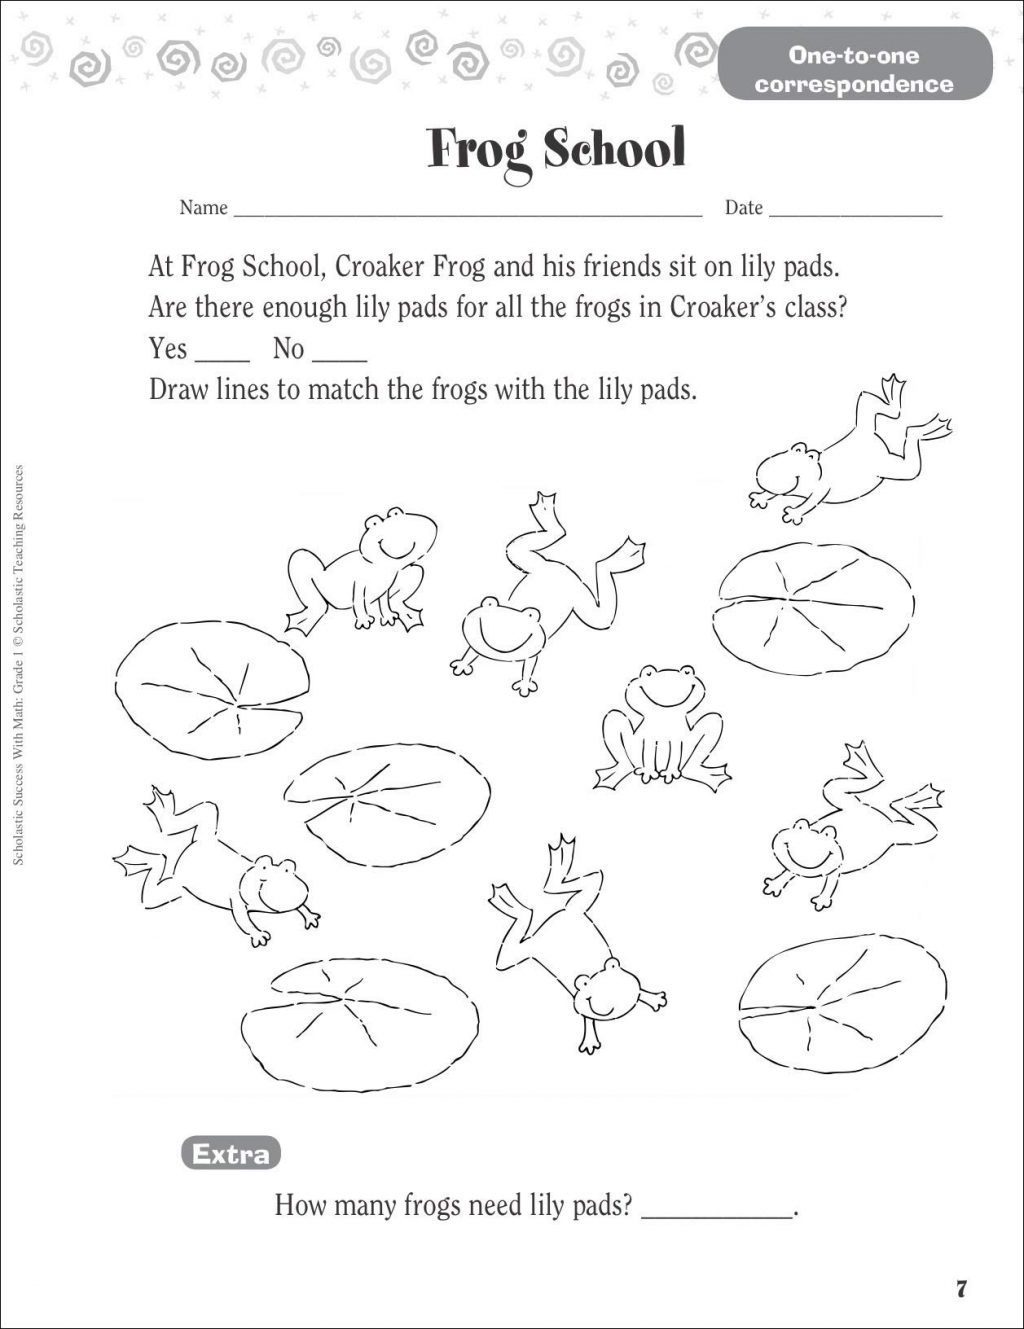 Worksheet Ideas ~ Toddler Worksheets Lattice Math Kids within Multiplication Worksheets Lattice